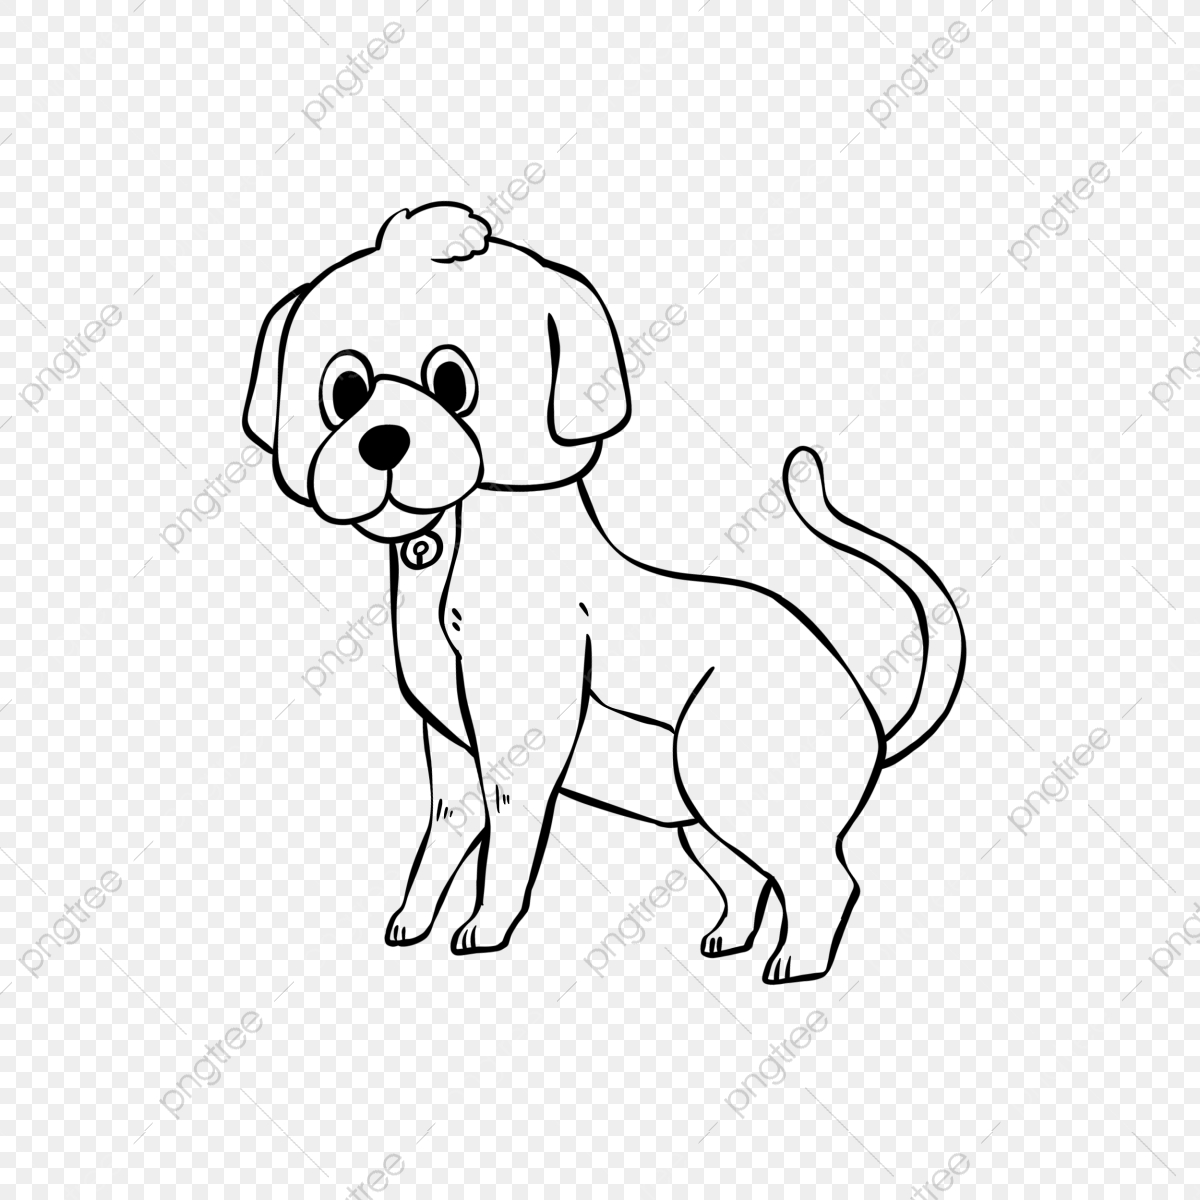 Cute Puppy Lineart Dog Clipart Black And White Puppy Hand Painted Cartoon Png Transparent Clipart Image And Psd File For Free Download